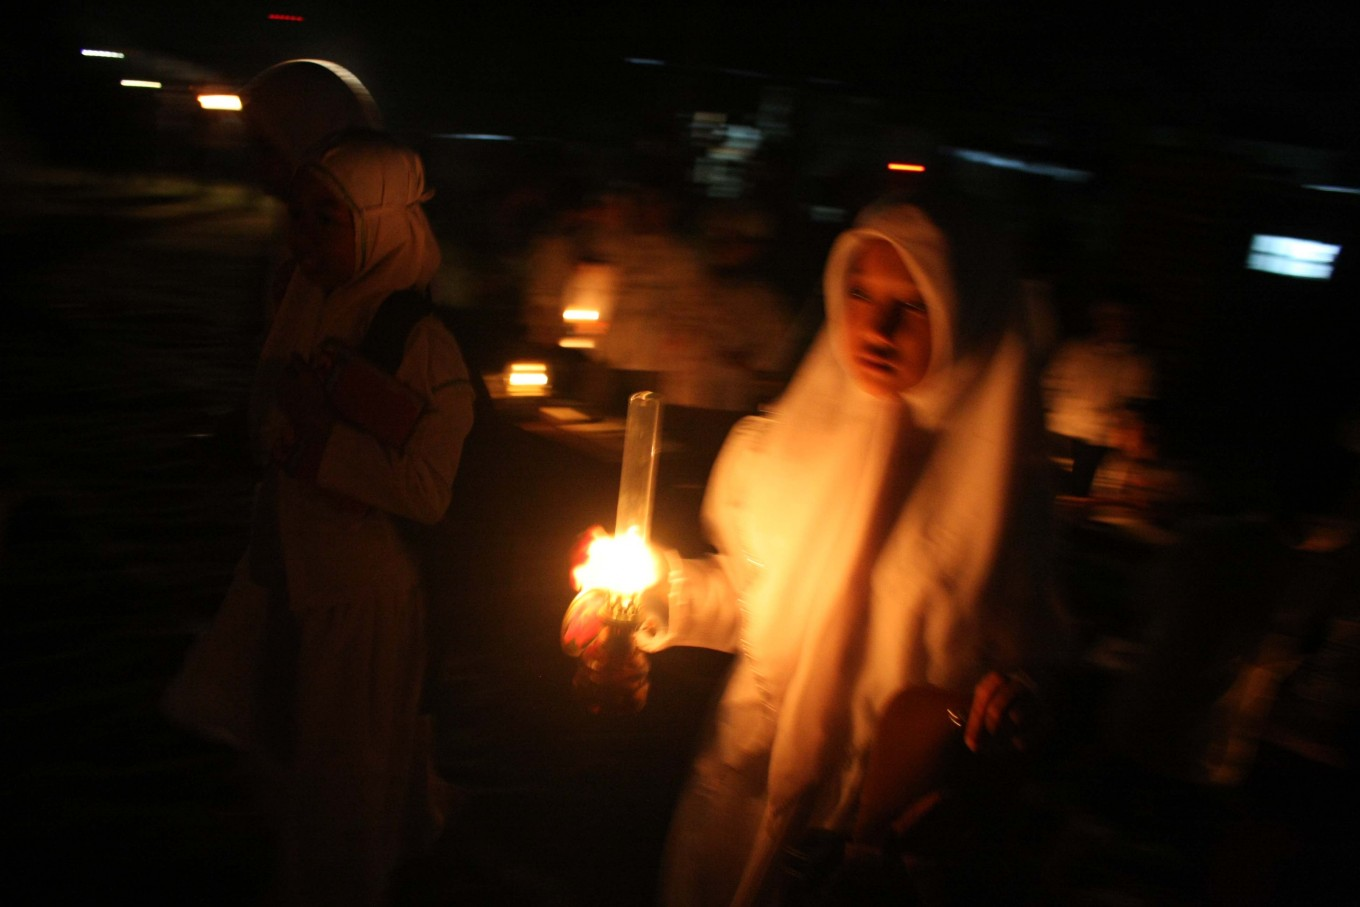 A female santri (student) carries an oil lamp to join in the tadarus (mass Quran recital) at Mojosongo, Surakarta, Central Java, on June 11. JP/Maksum Nur Fauzan